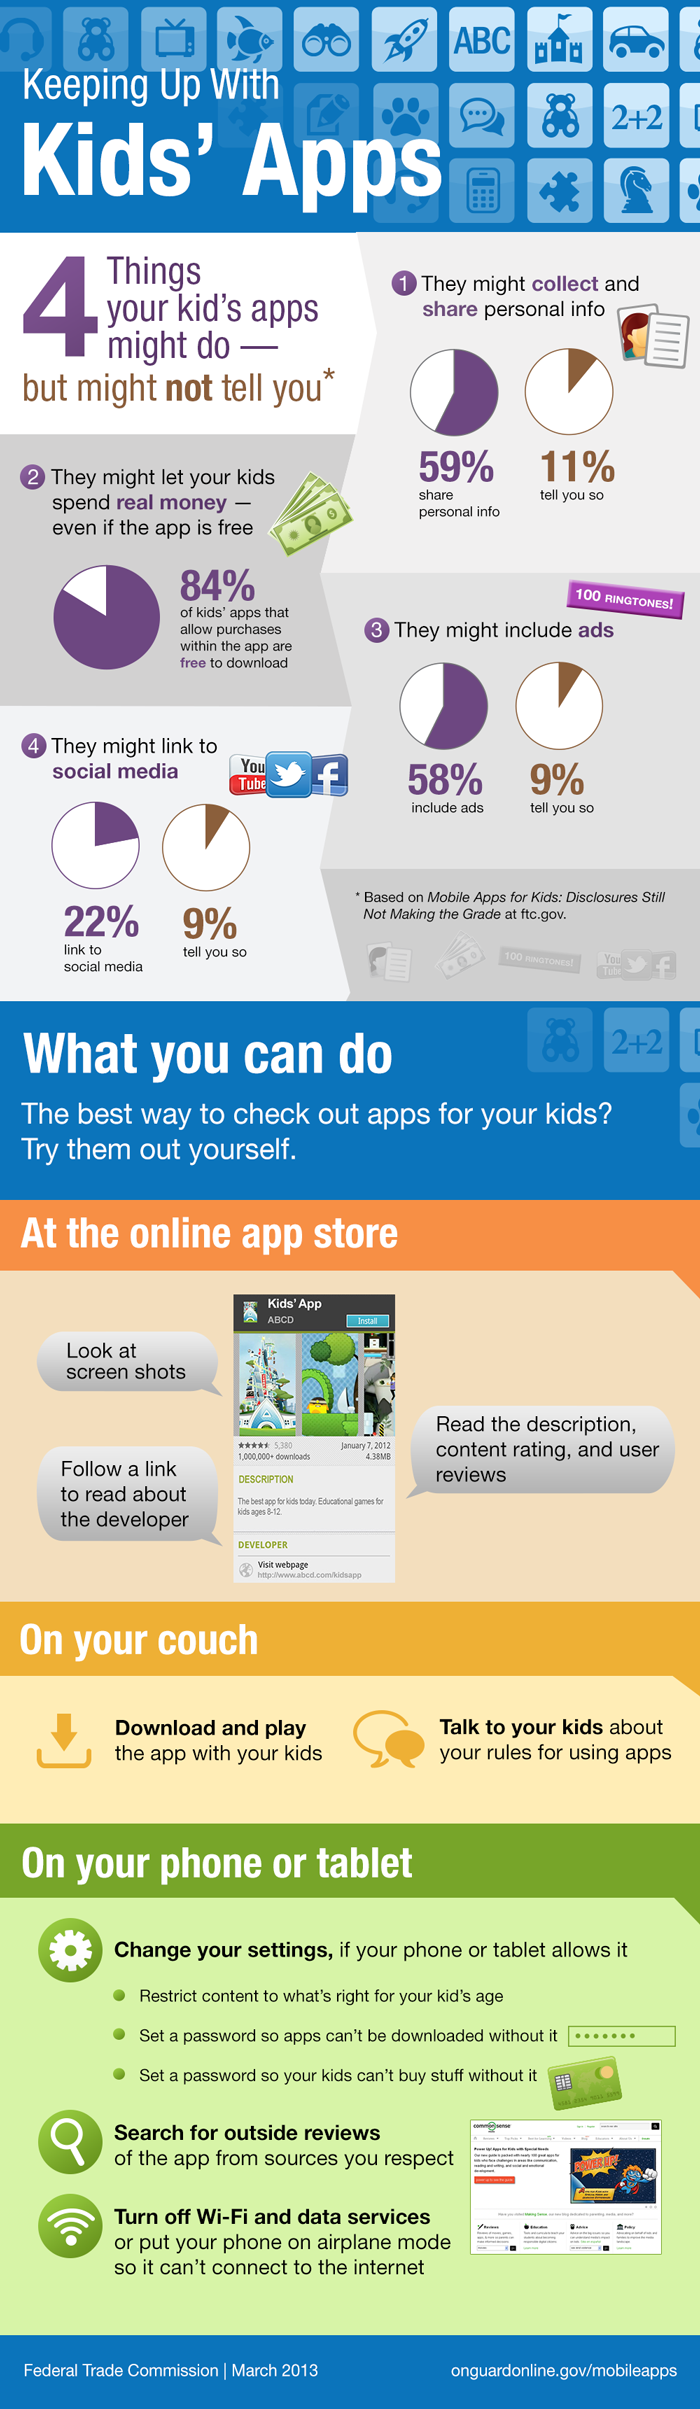 Keeping Up With Kids' Apps infographic: How parents can find out what apps might be doing — but might not be telling them — and what they can do about it.